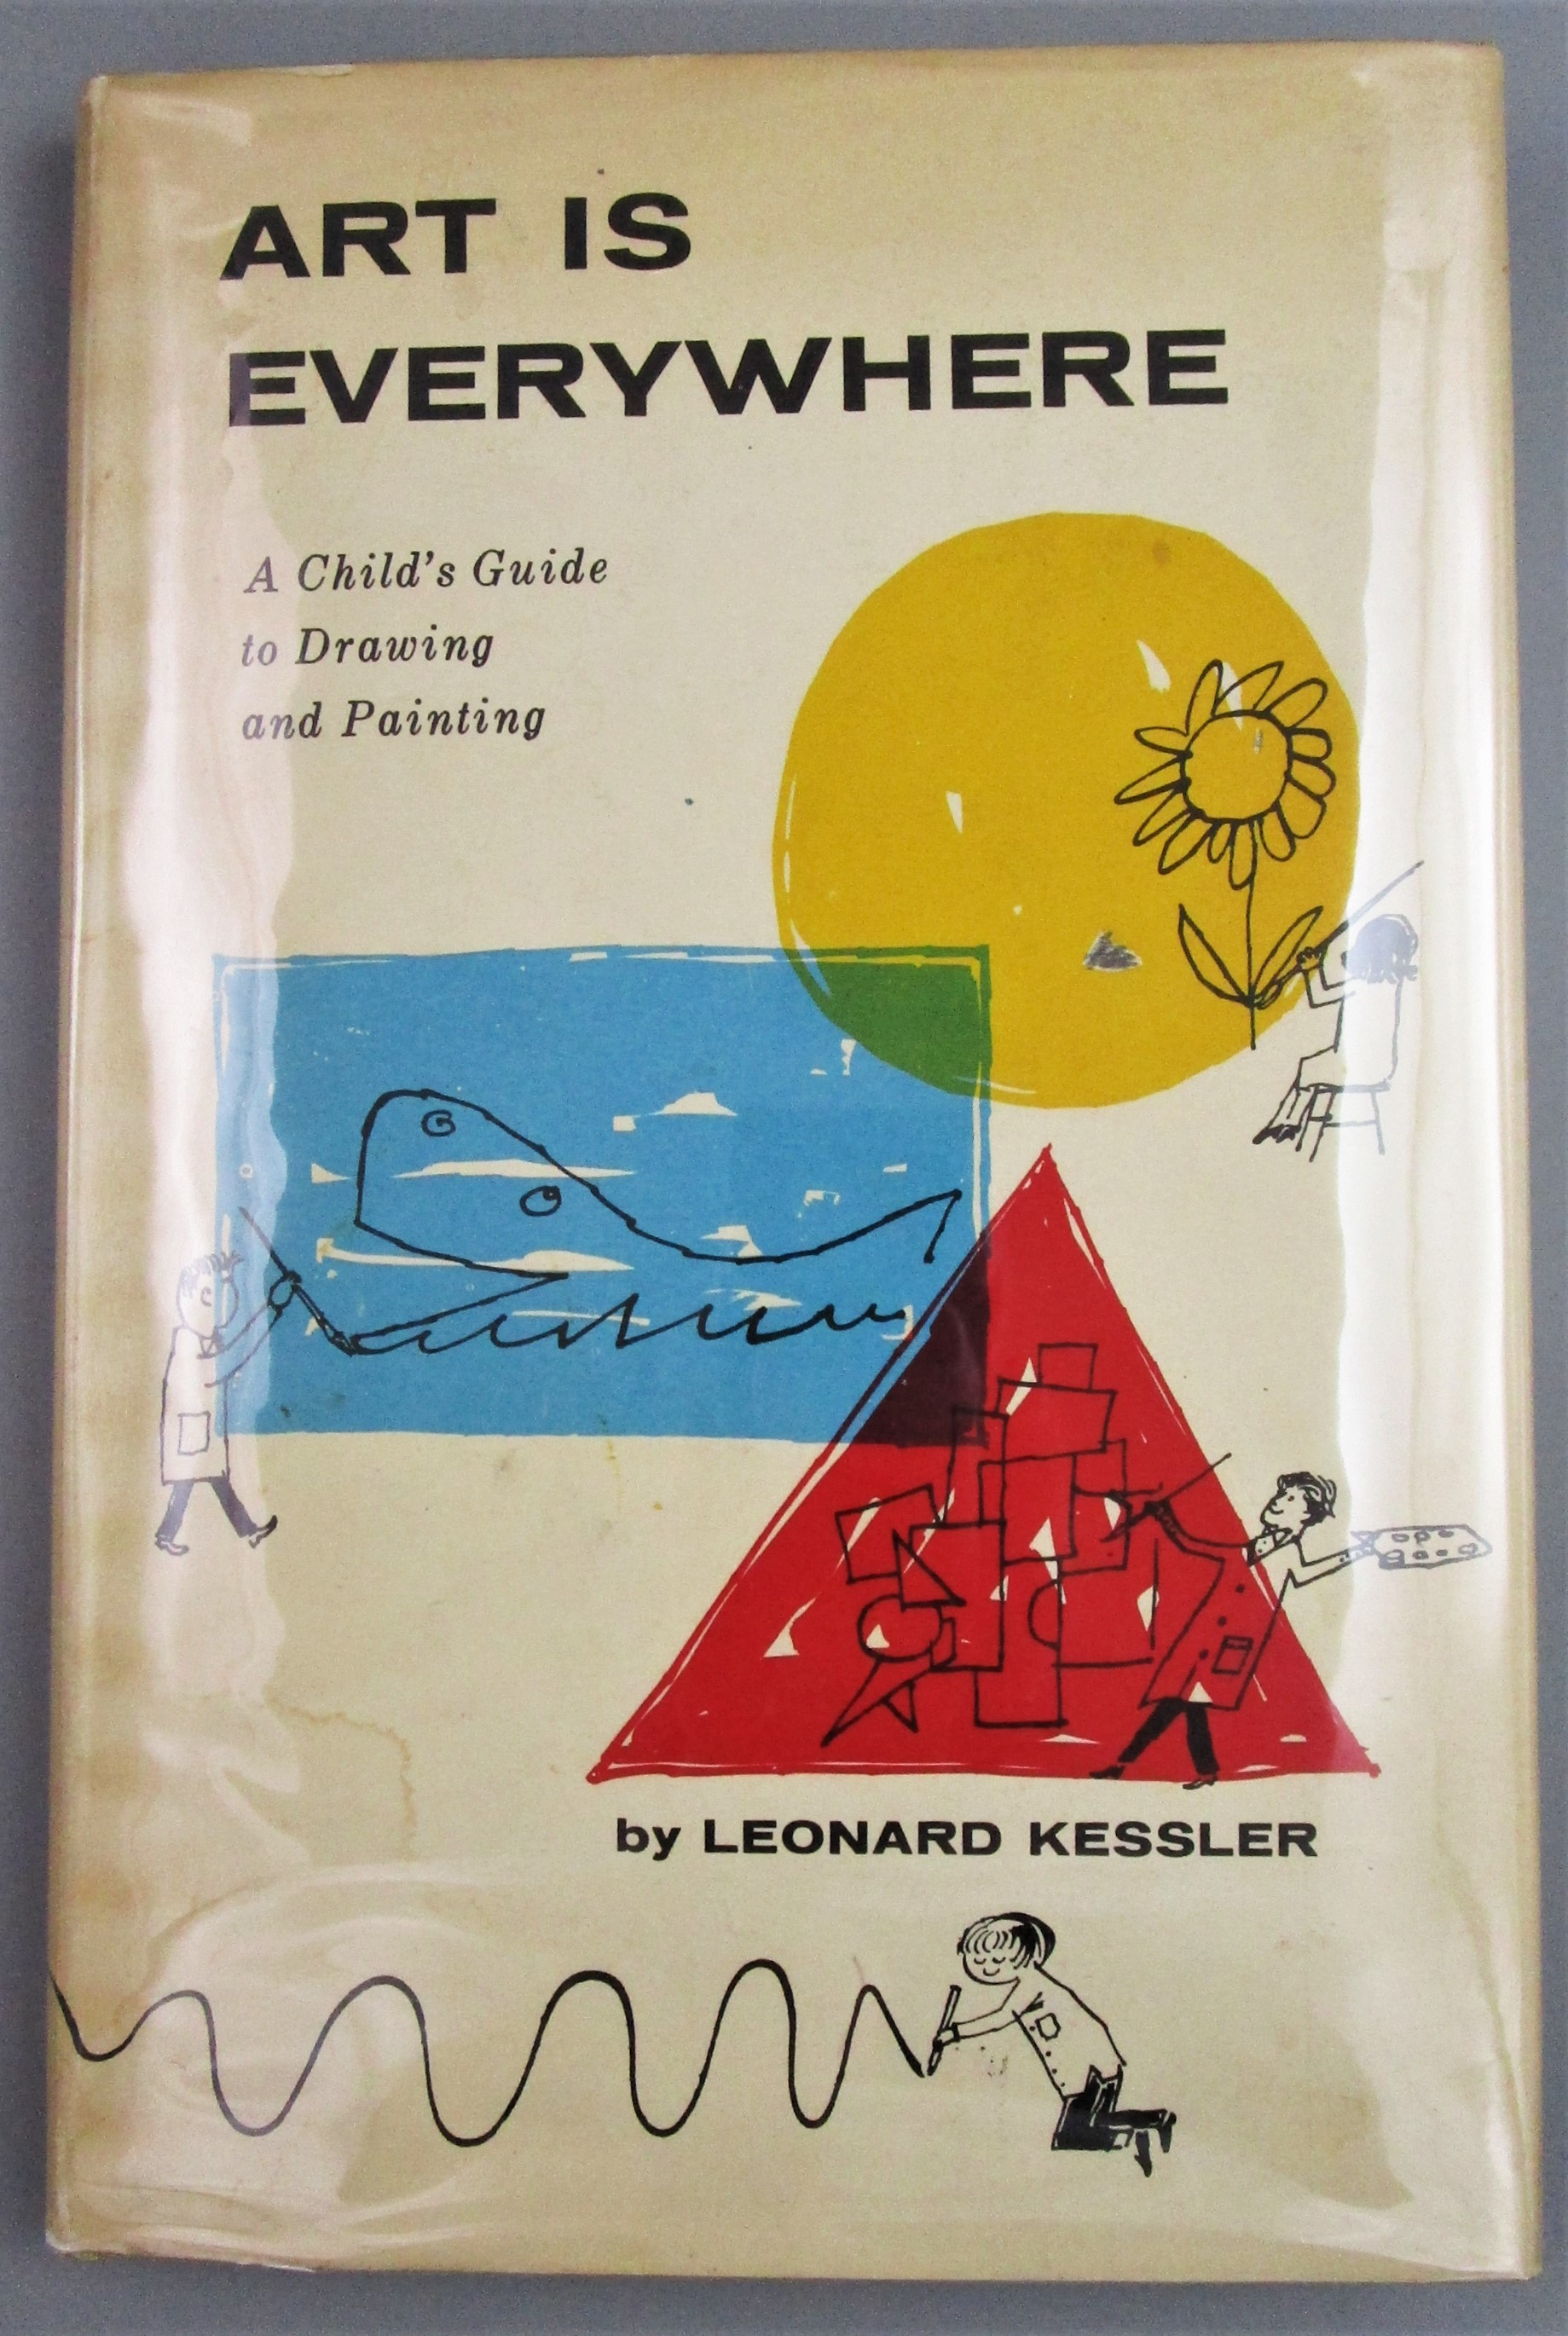 ART IS EVERYWHERE: A CHILD'S GUIDE TO DRAWING & PAINTING, by Leonard Kessler - 1958 1st Edition